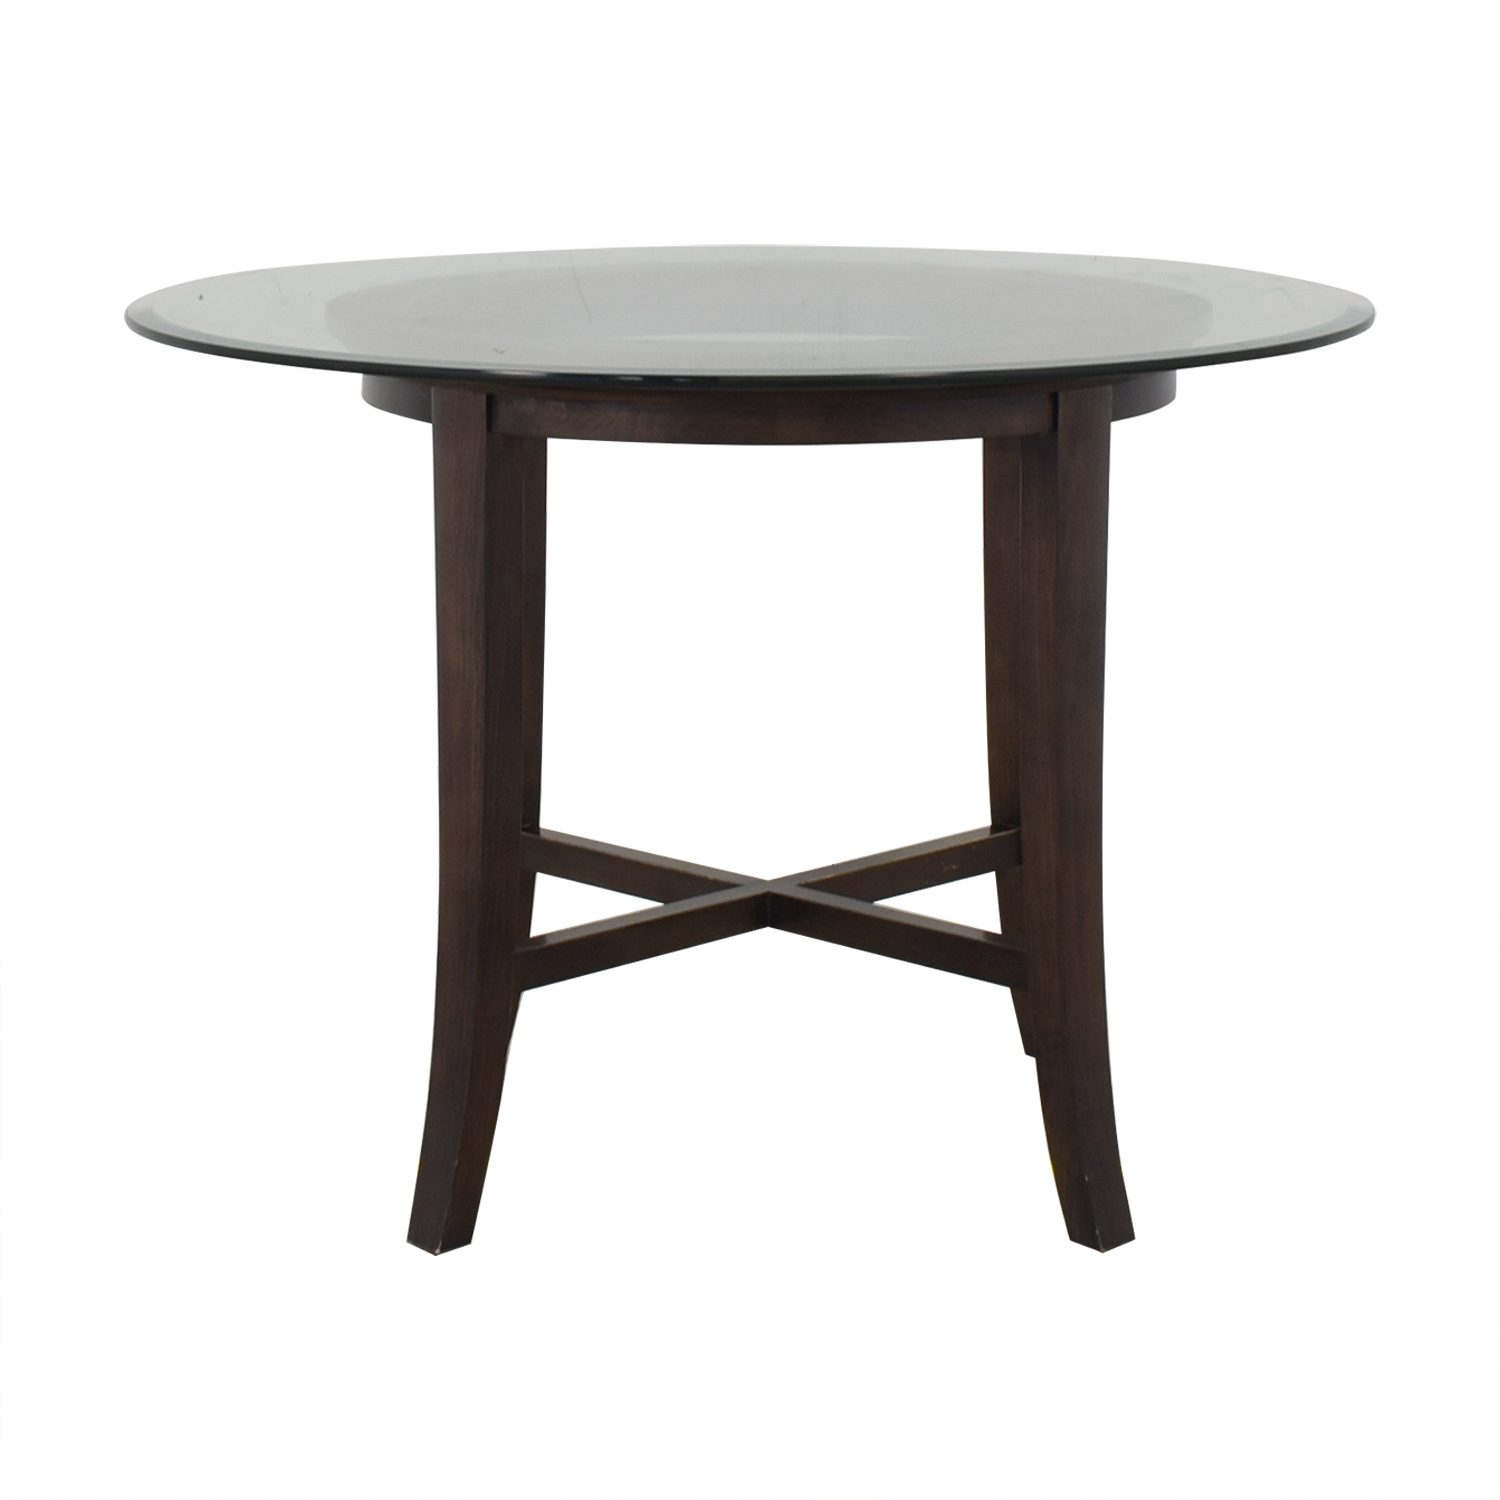 Crate & Barrel Crate & Barrel Halo Ebony Round Dining Table